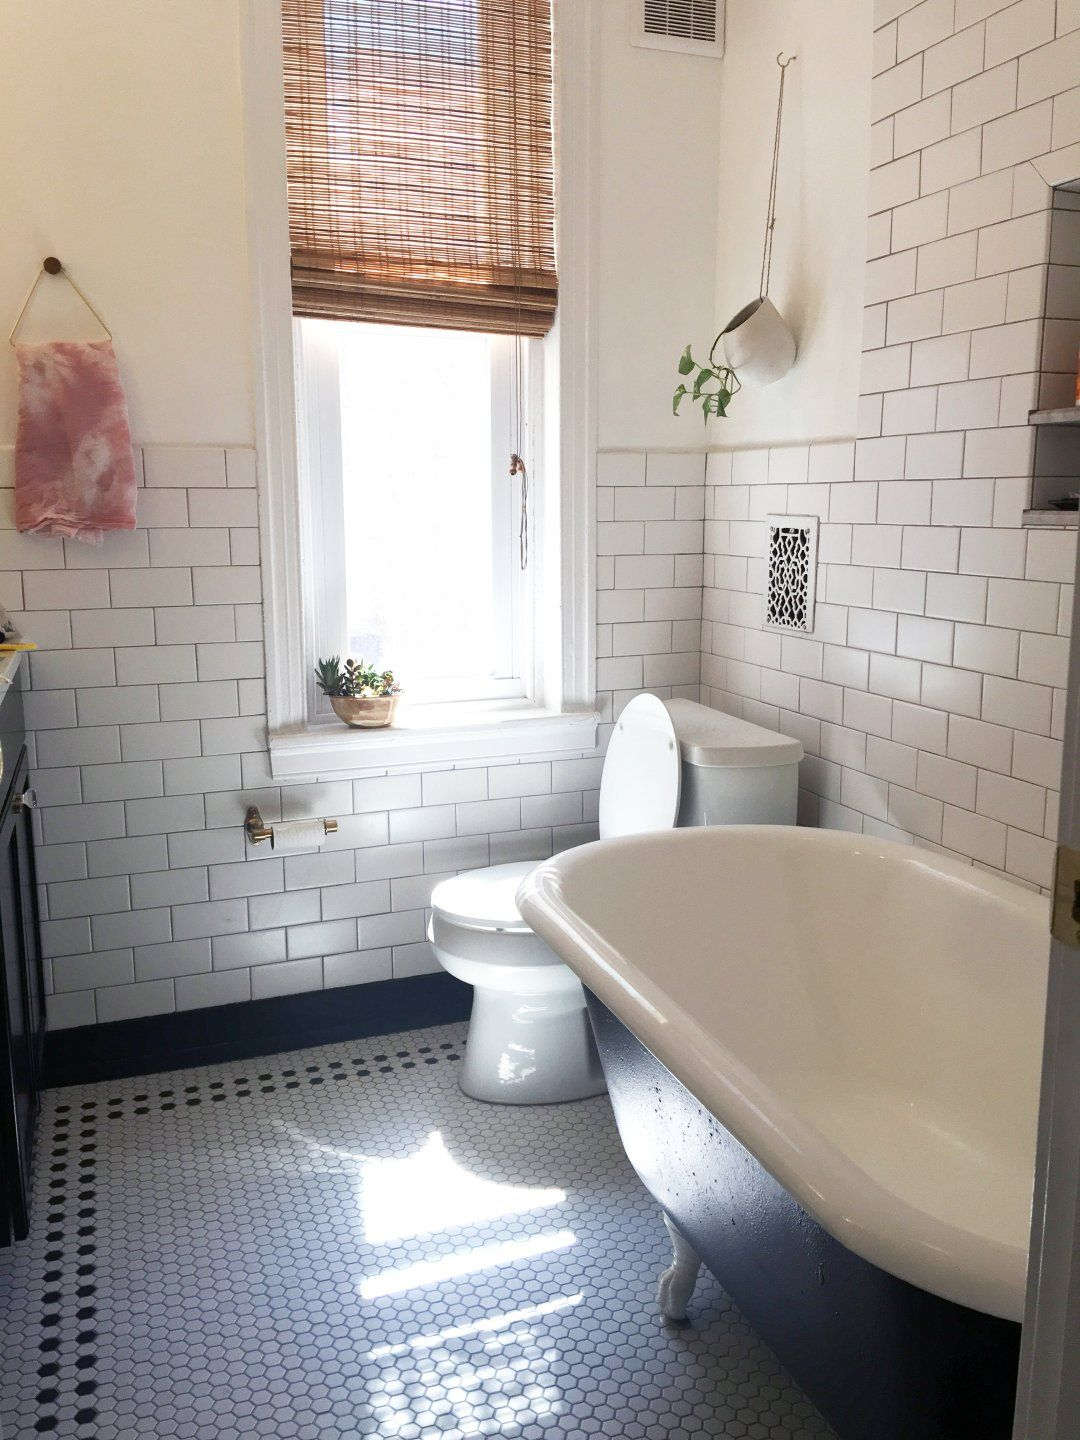 $20K Vintage Bathroom Remodel: Budget, Sources + More | Home ...